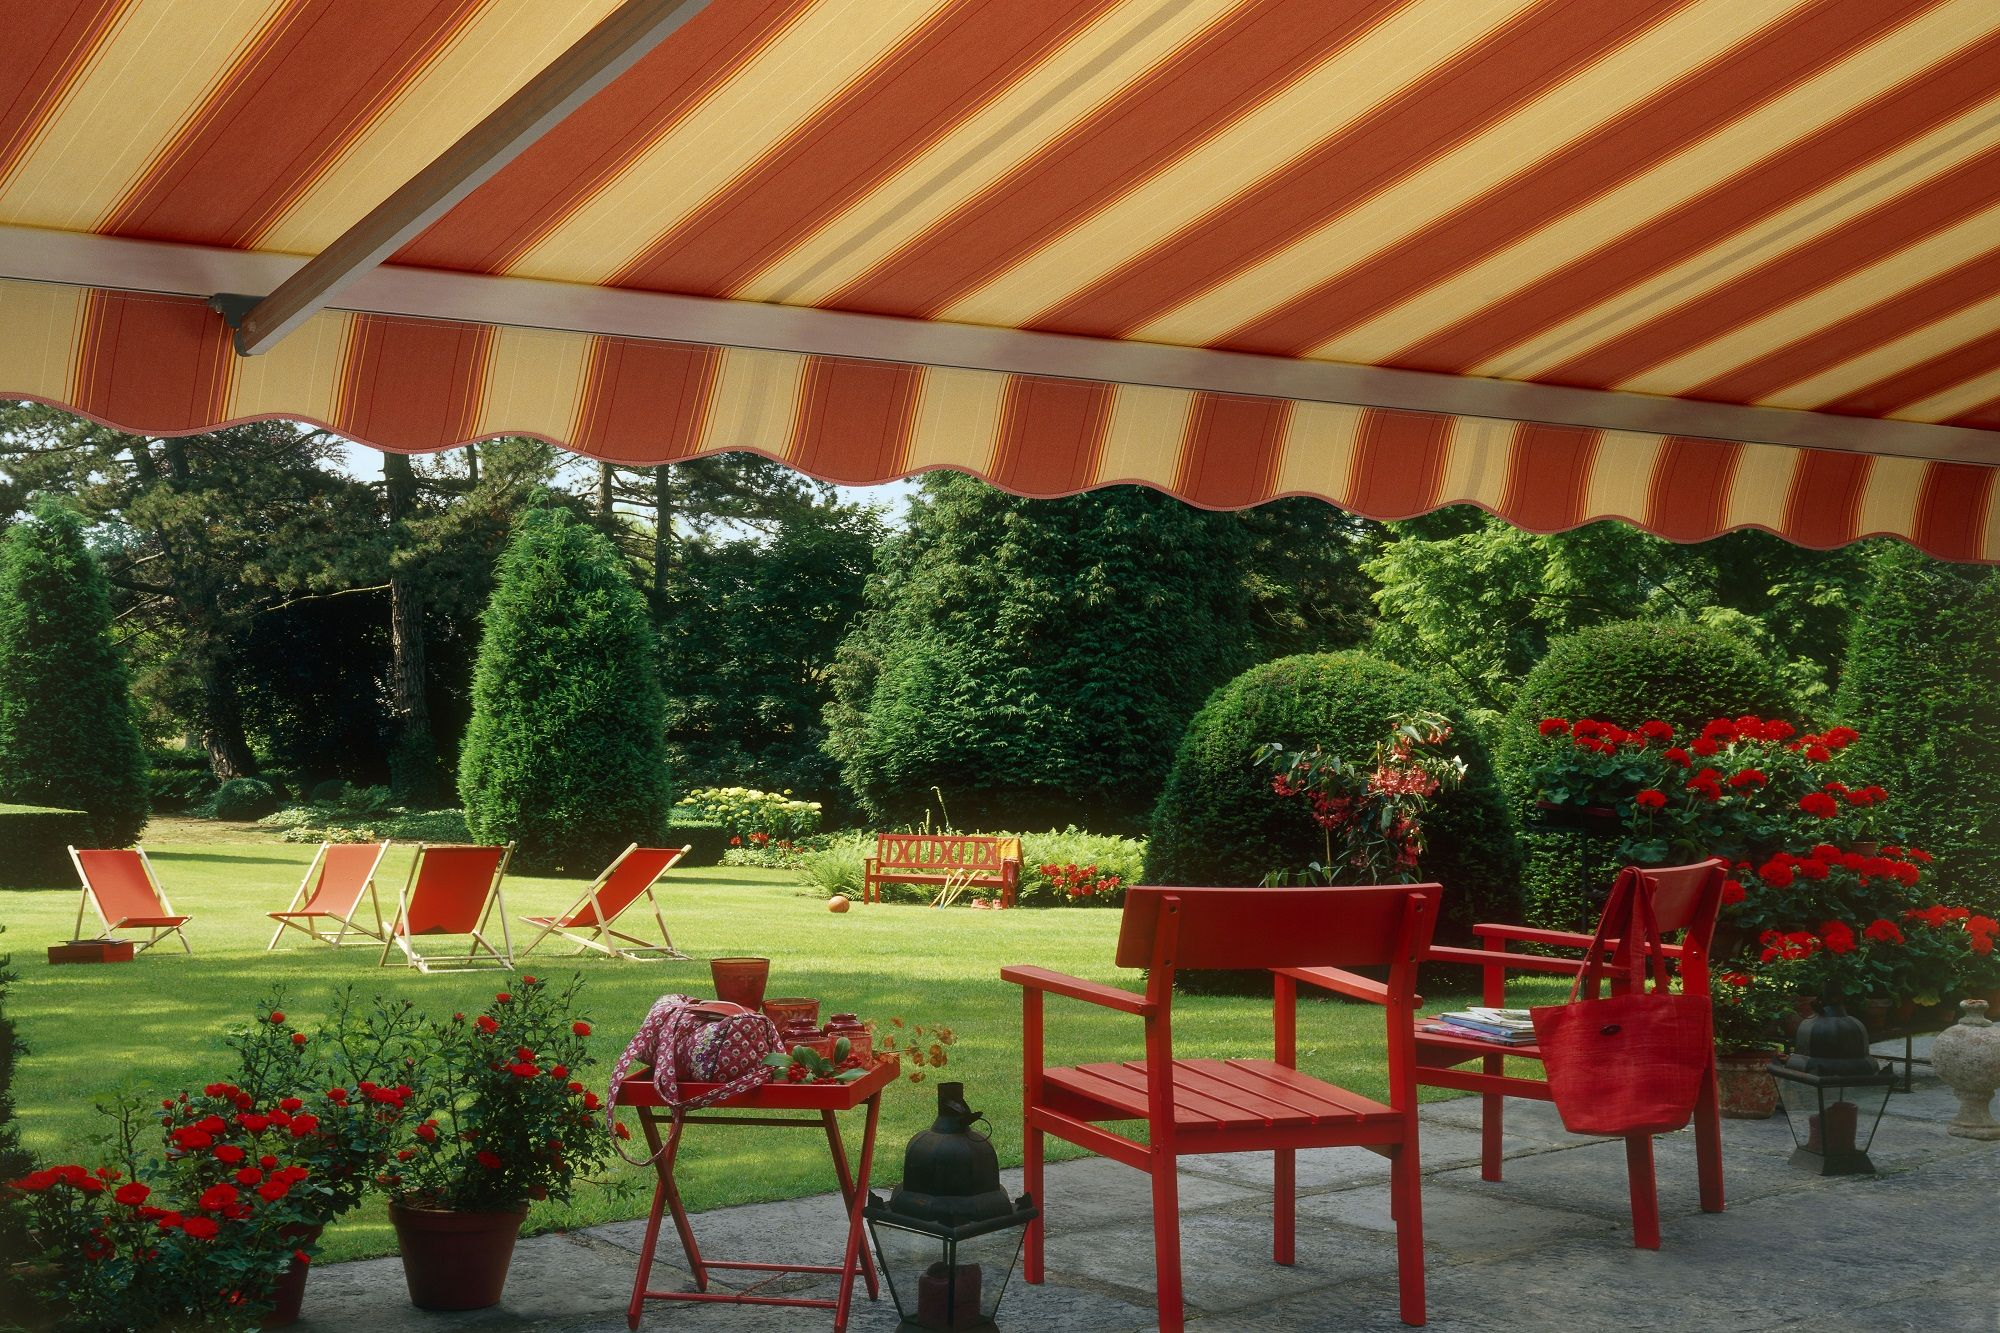 Retractable Folding Lateral Arm Residential Awning Deck With Pergola Residential Awnings Covered Pergola